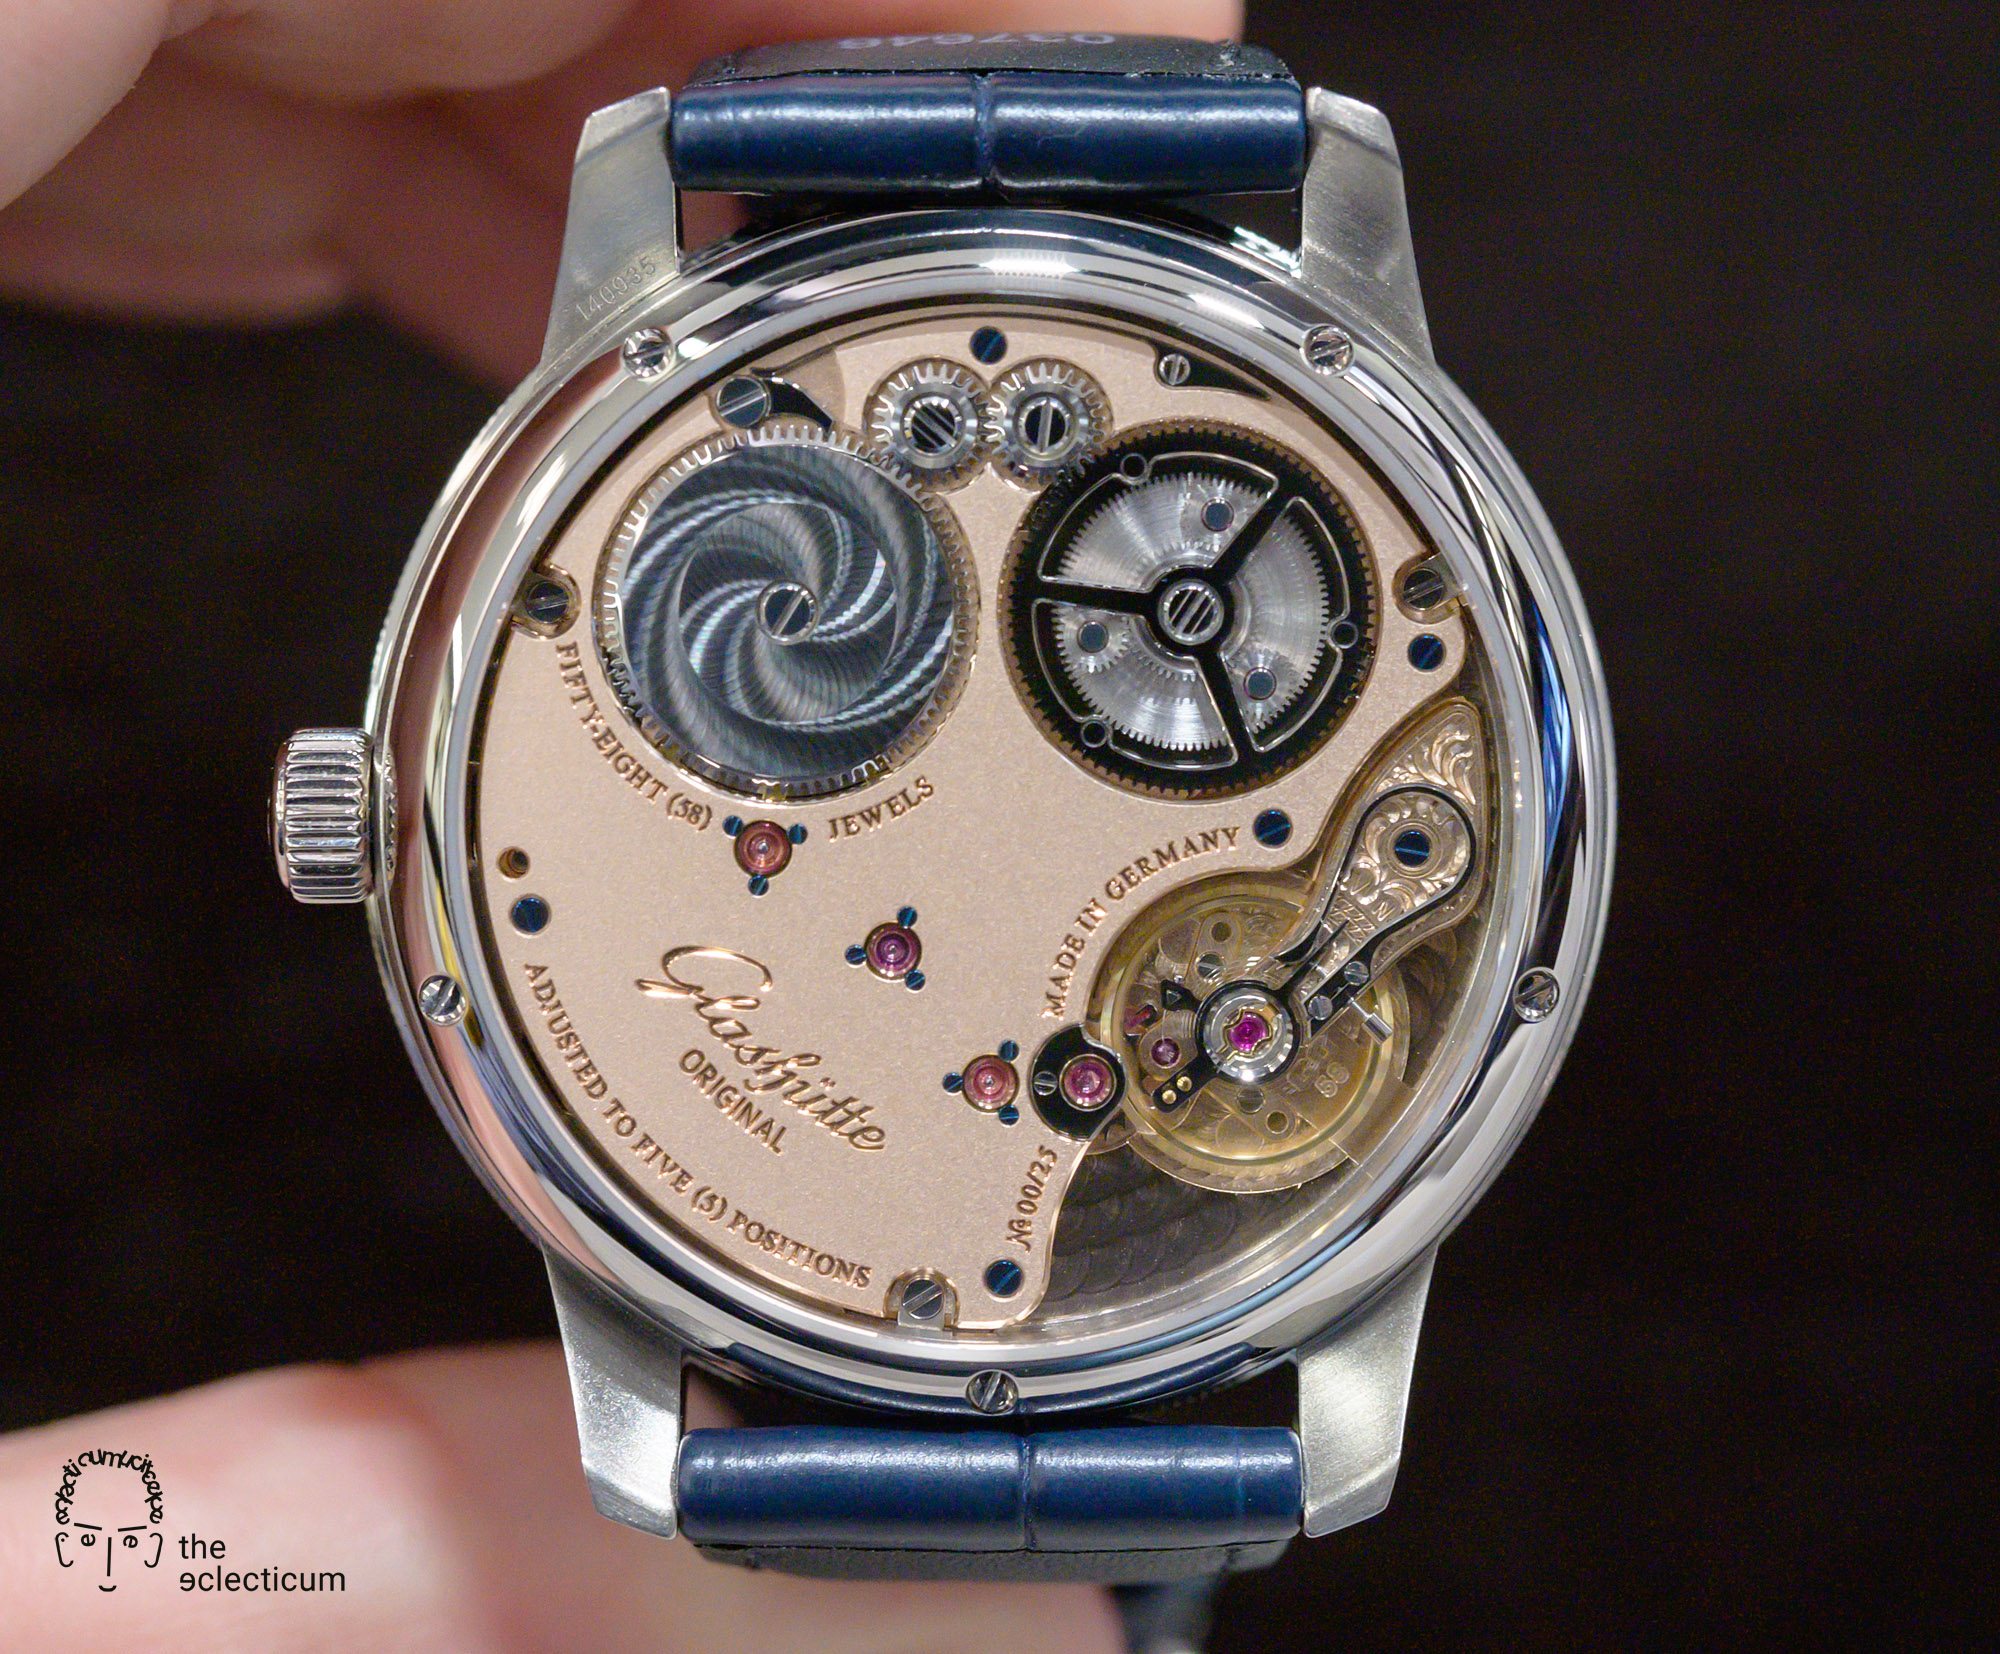 Glashütte Original Senator Limited Edition 2020 cal. 58-03 movement caseback